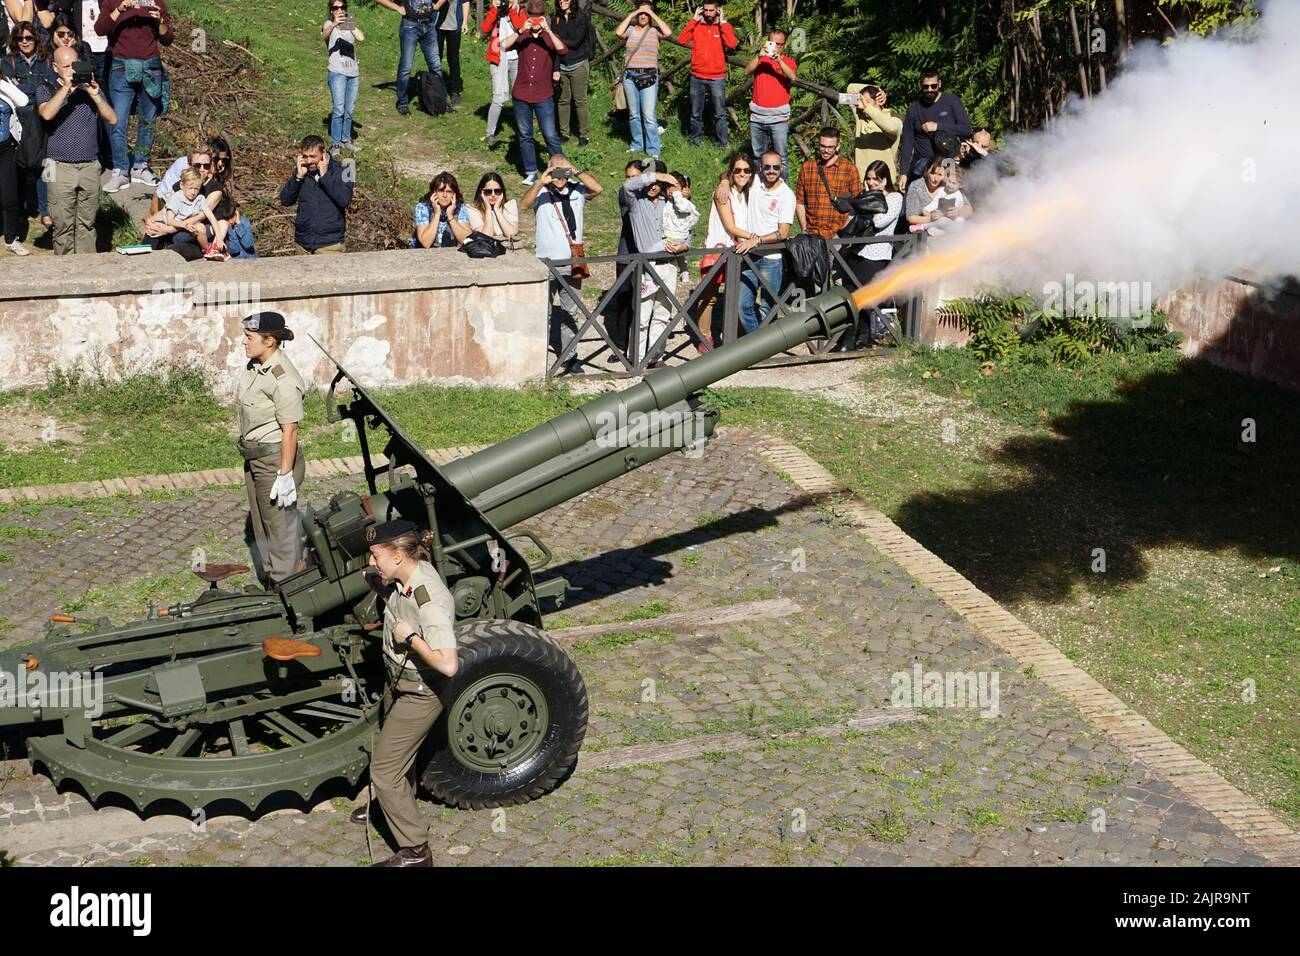 ROME, ITALY - OCTOBER 10, 2017: the traditional cannon shot of midday on the Gianicolo hill in Rome, Italy Stock Photo